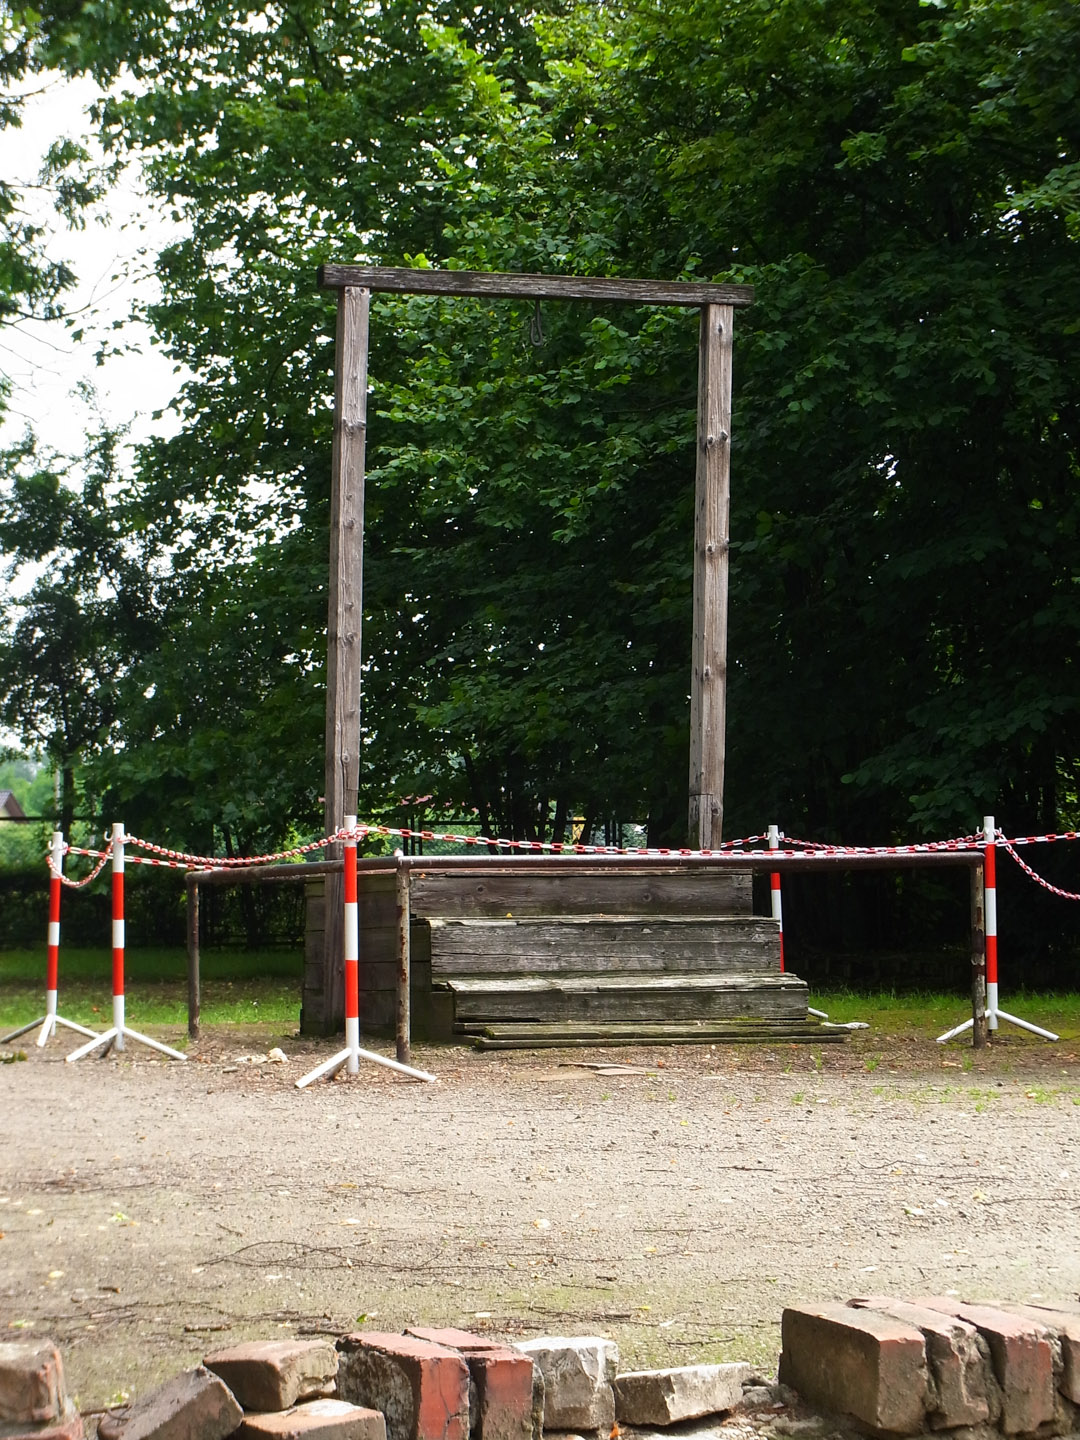 The gallows on which Rudolf Hös (Rudolf Hoess - commandant of the camp for 3.5 years) was hung from, built especially, next to the gas chamber, and within view of the house he lived in so long, he